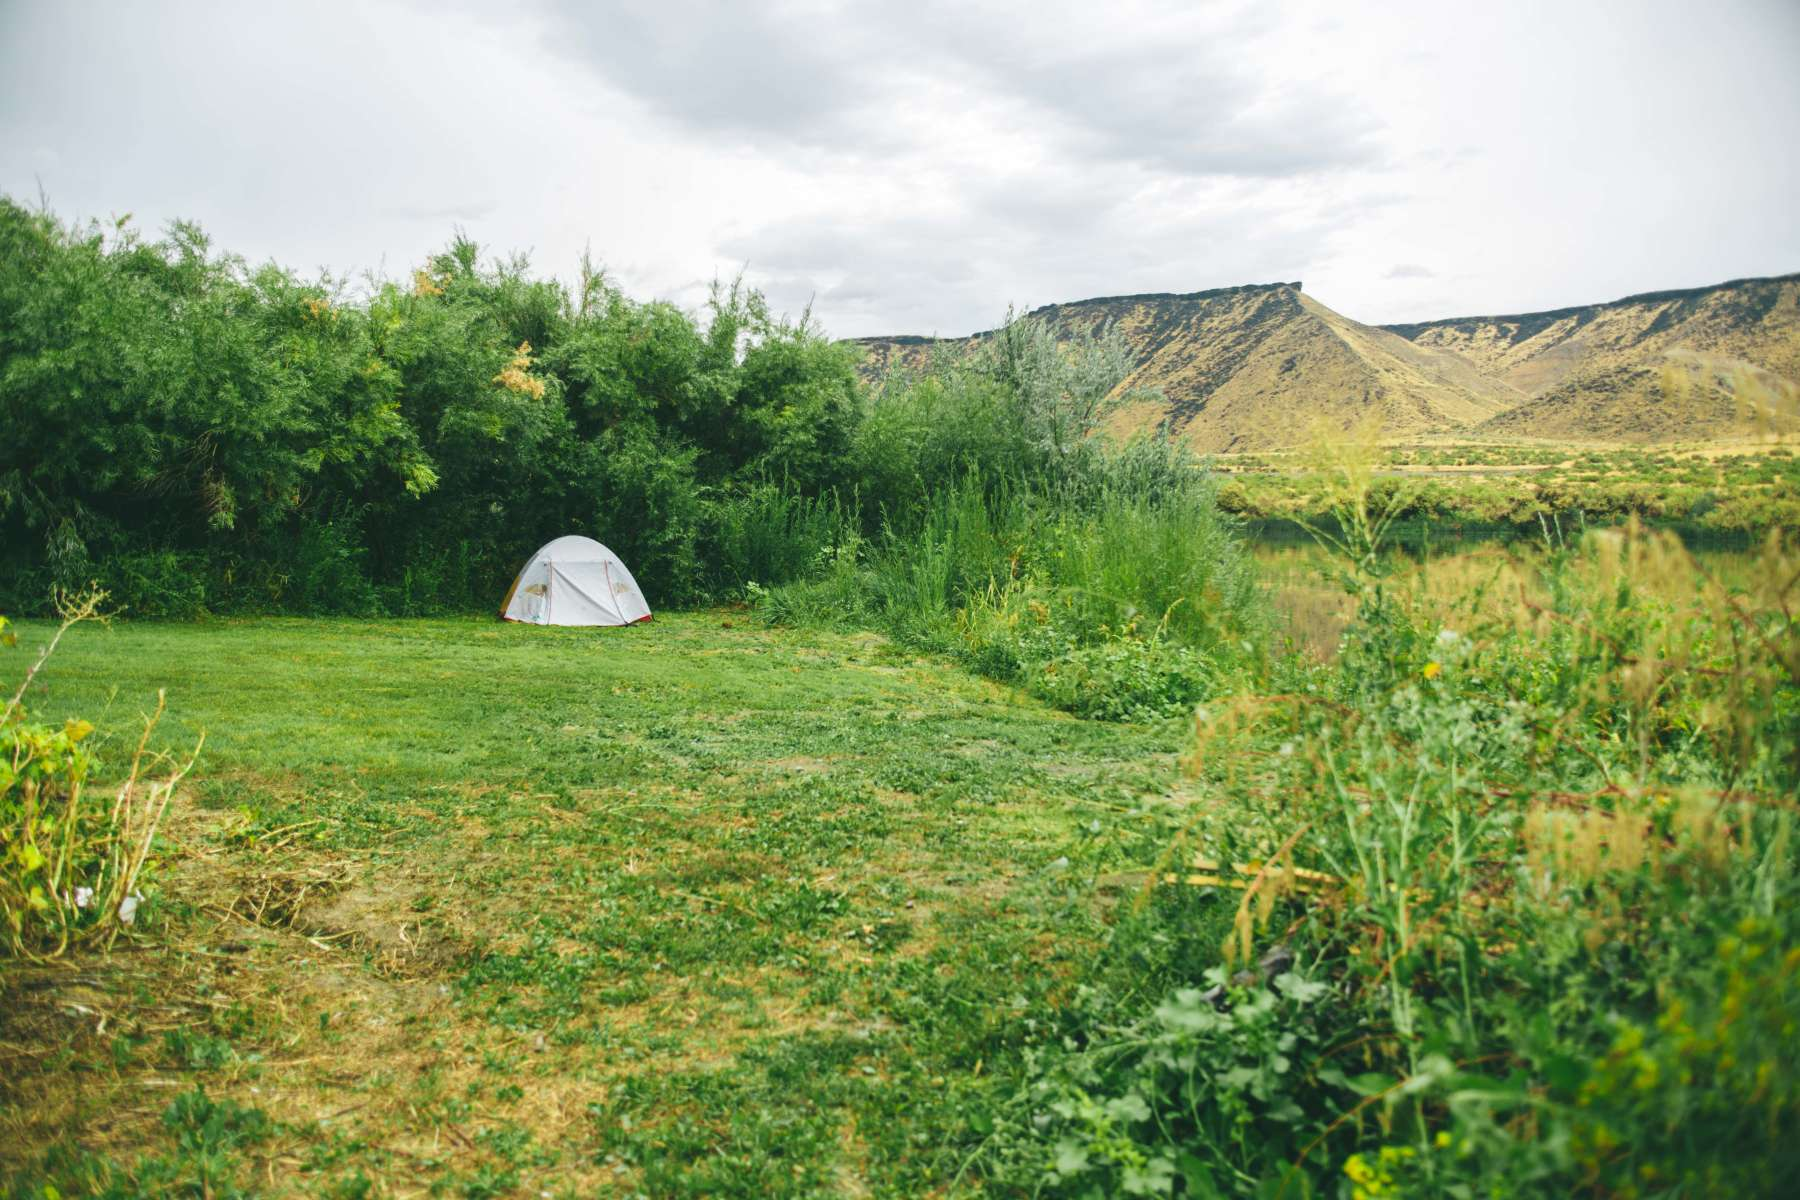 Common Ground-Snake River Camps, Common Ground, ID: 1 ...